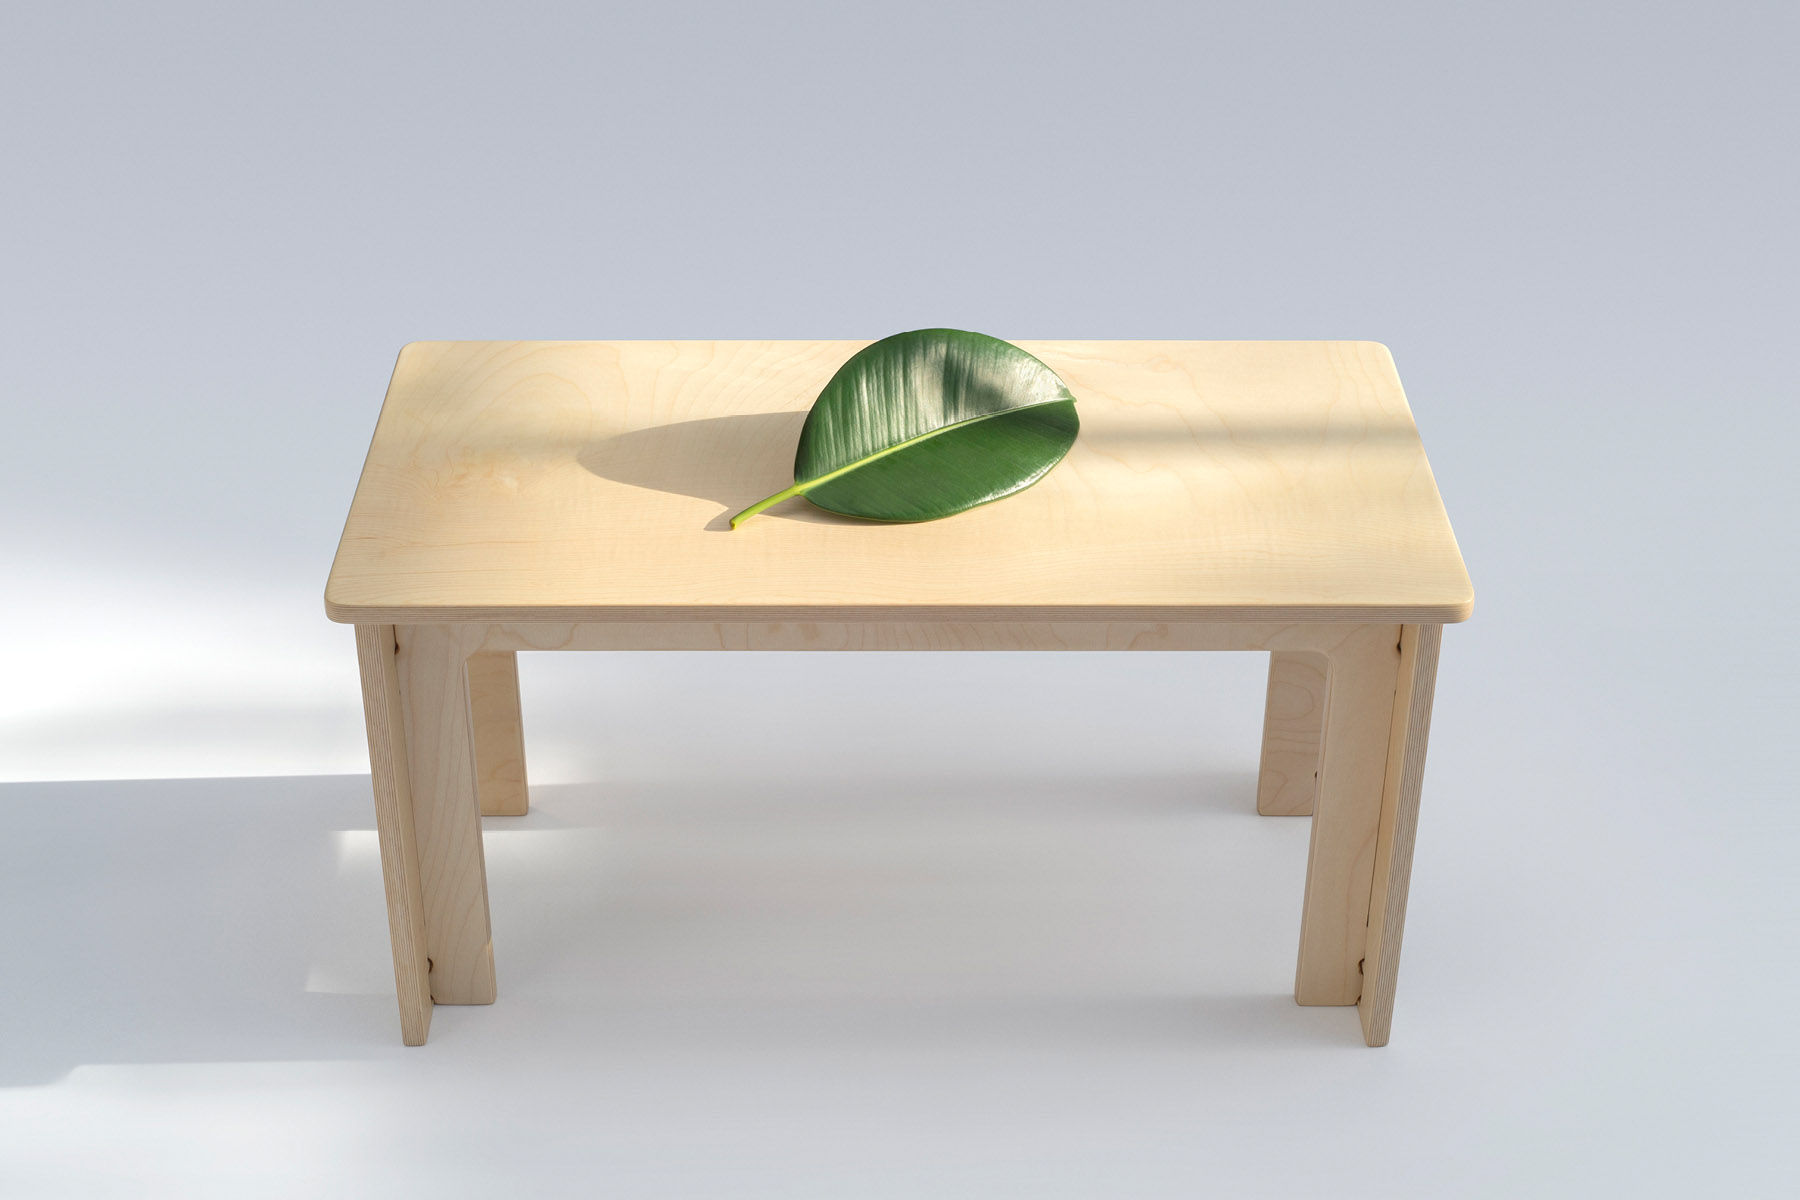 Maple coffee table without fasteners, a sustainable product